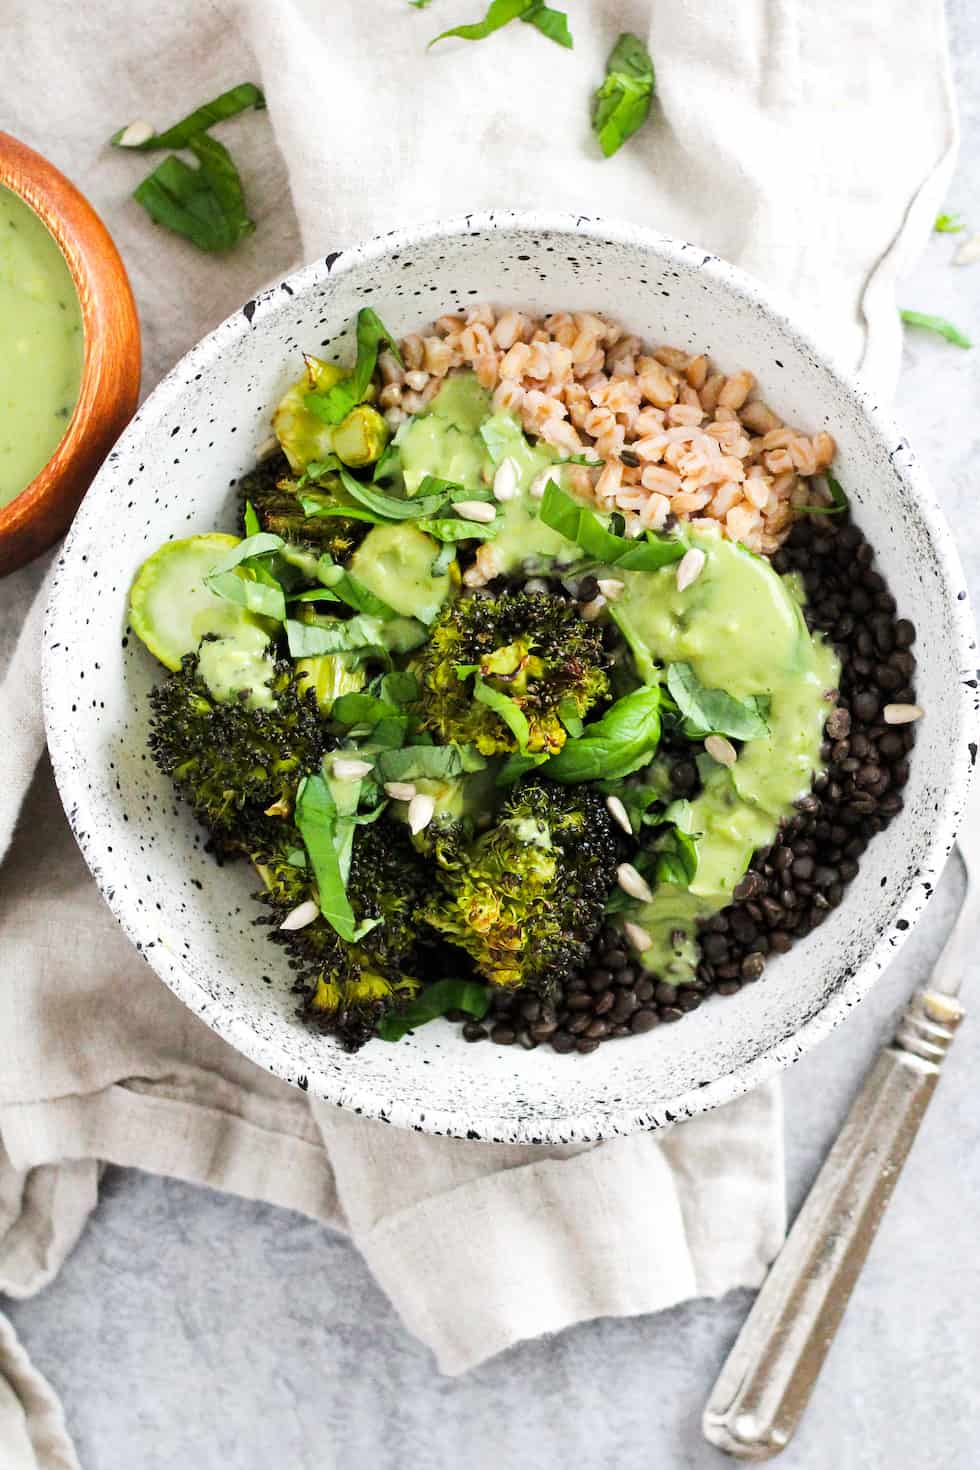 Lentil grain bowls with matcha dressing in white ceramic bowl with cream napkin.